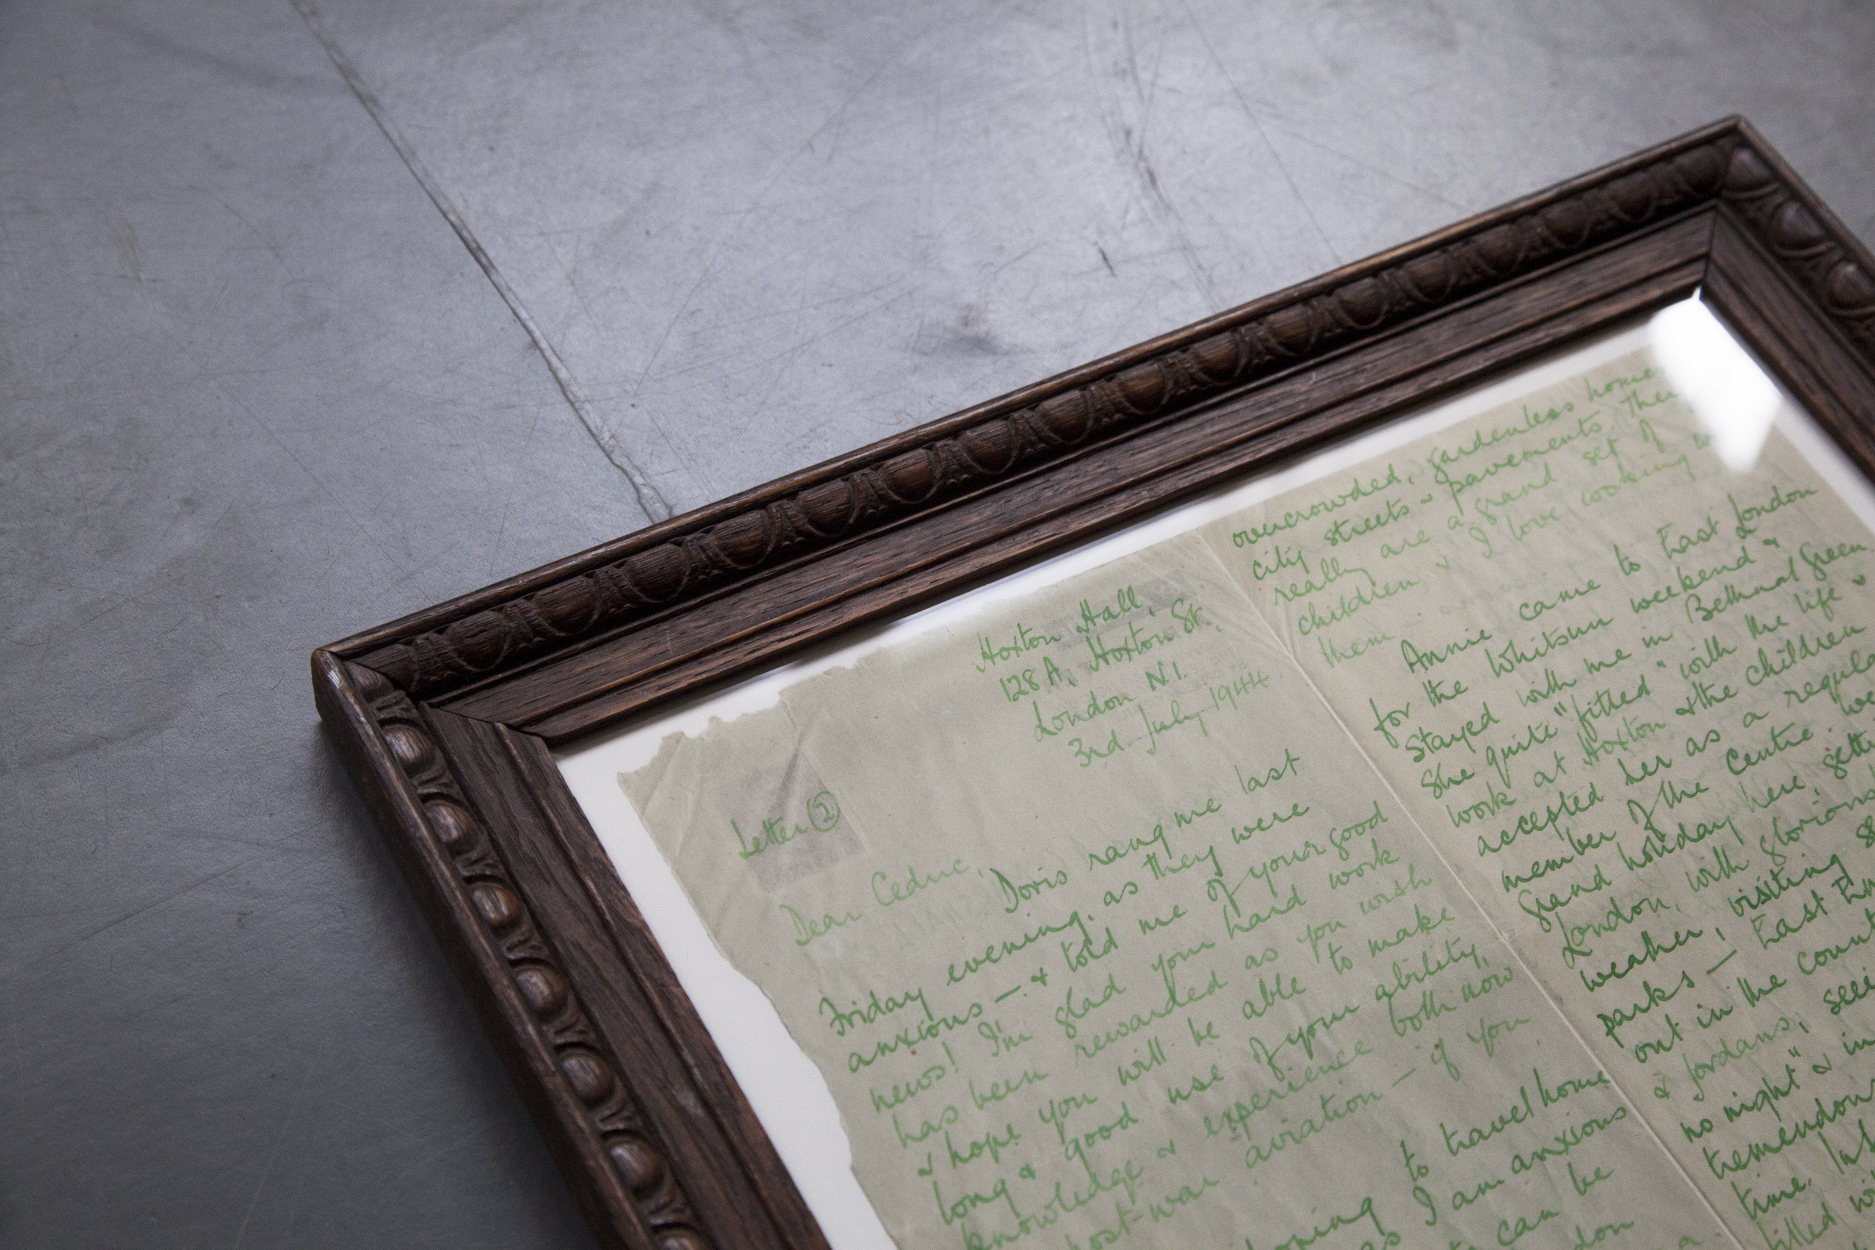 Handwritten documents from the Hoxton Hall archive. Photo: Minyung Im